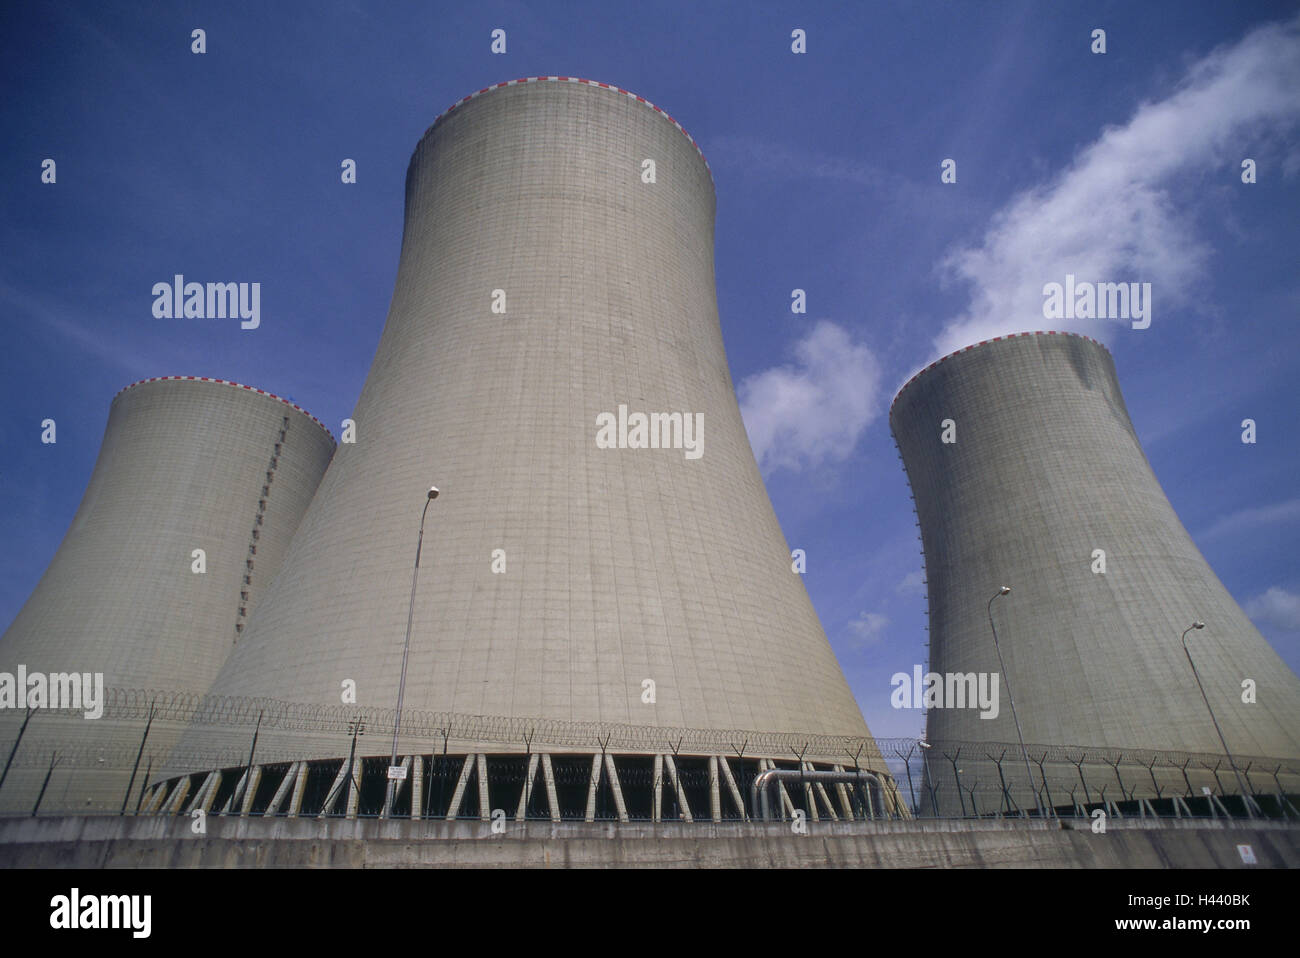 Czechia, Tyn nad Vltavou, nuclear power plant Temelin, cooling towers, atomic power station, nuclear energy, issue, - Stock Image